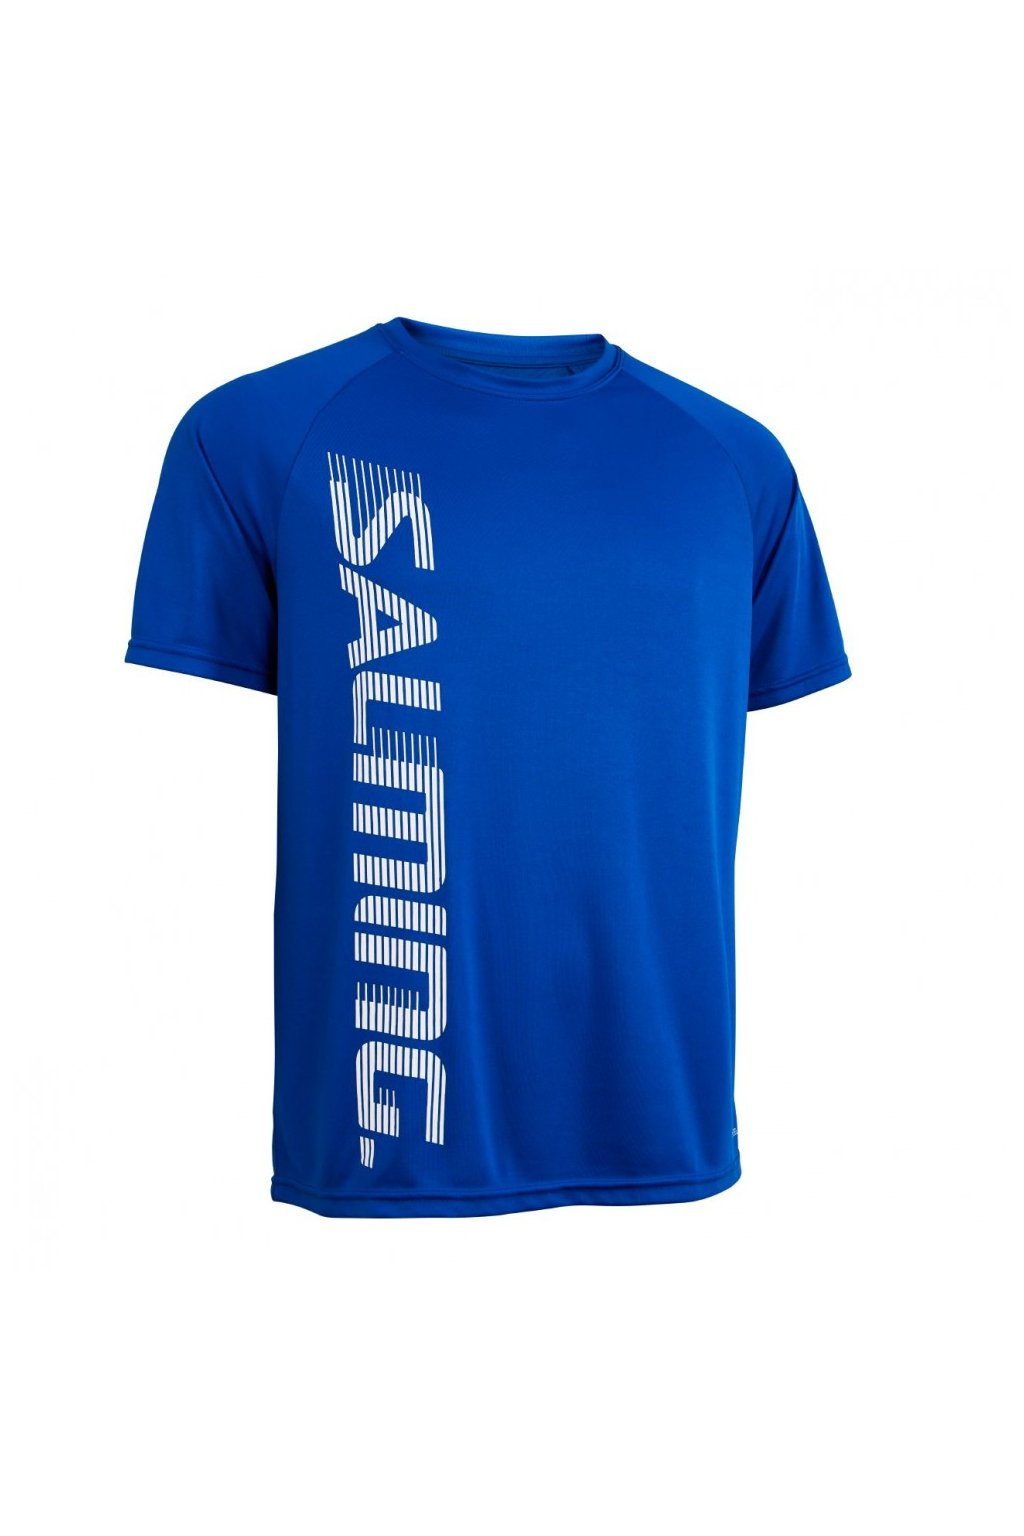 salming training tee 20 (1)